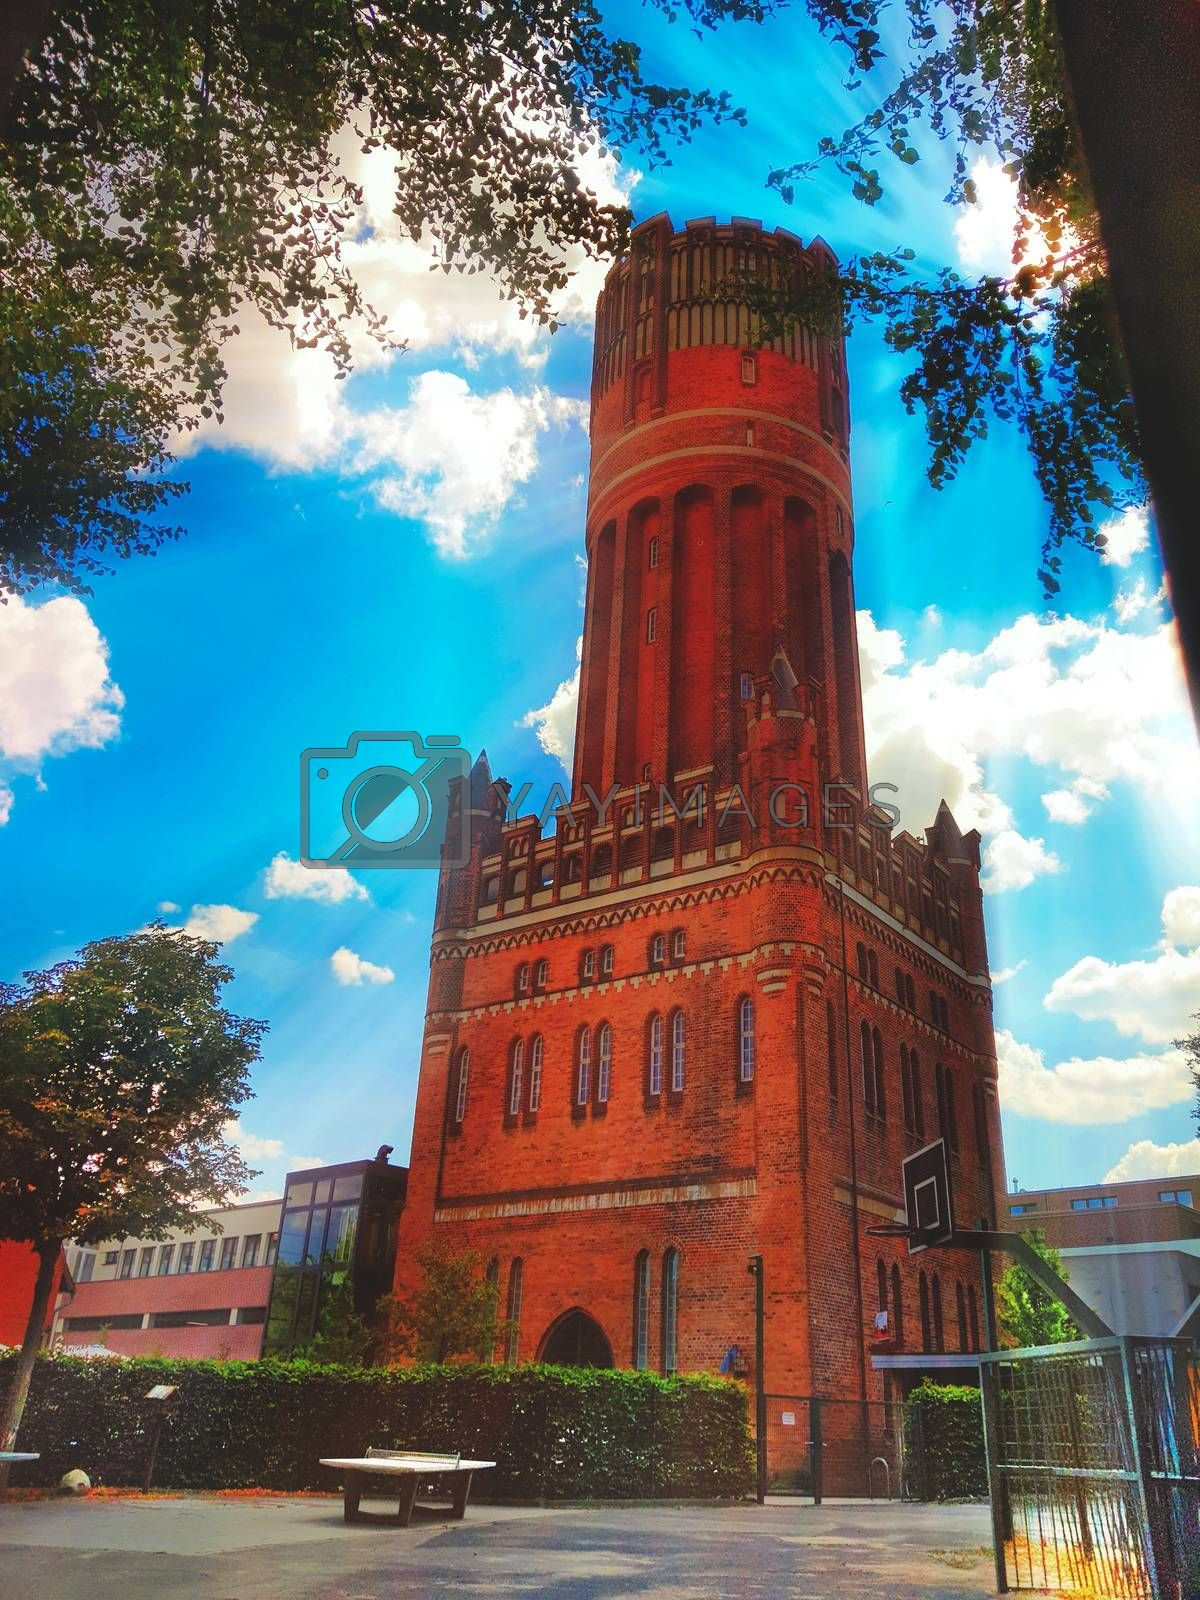 The Lüneburg water tower built between 1905 and 1907 in the southeast of Lüneburg's old town today serves as a lookout tower.